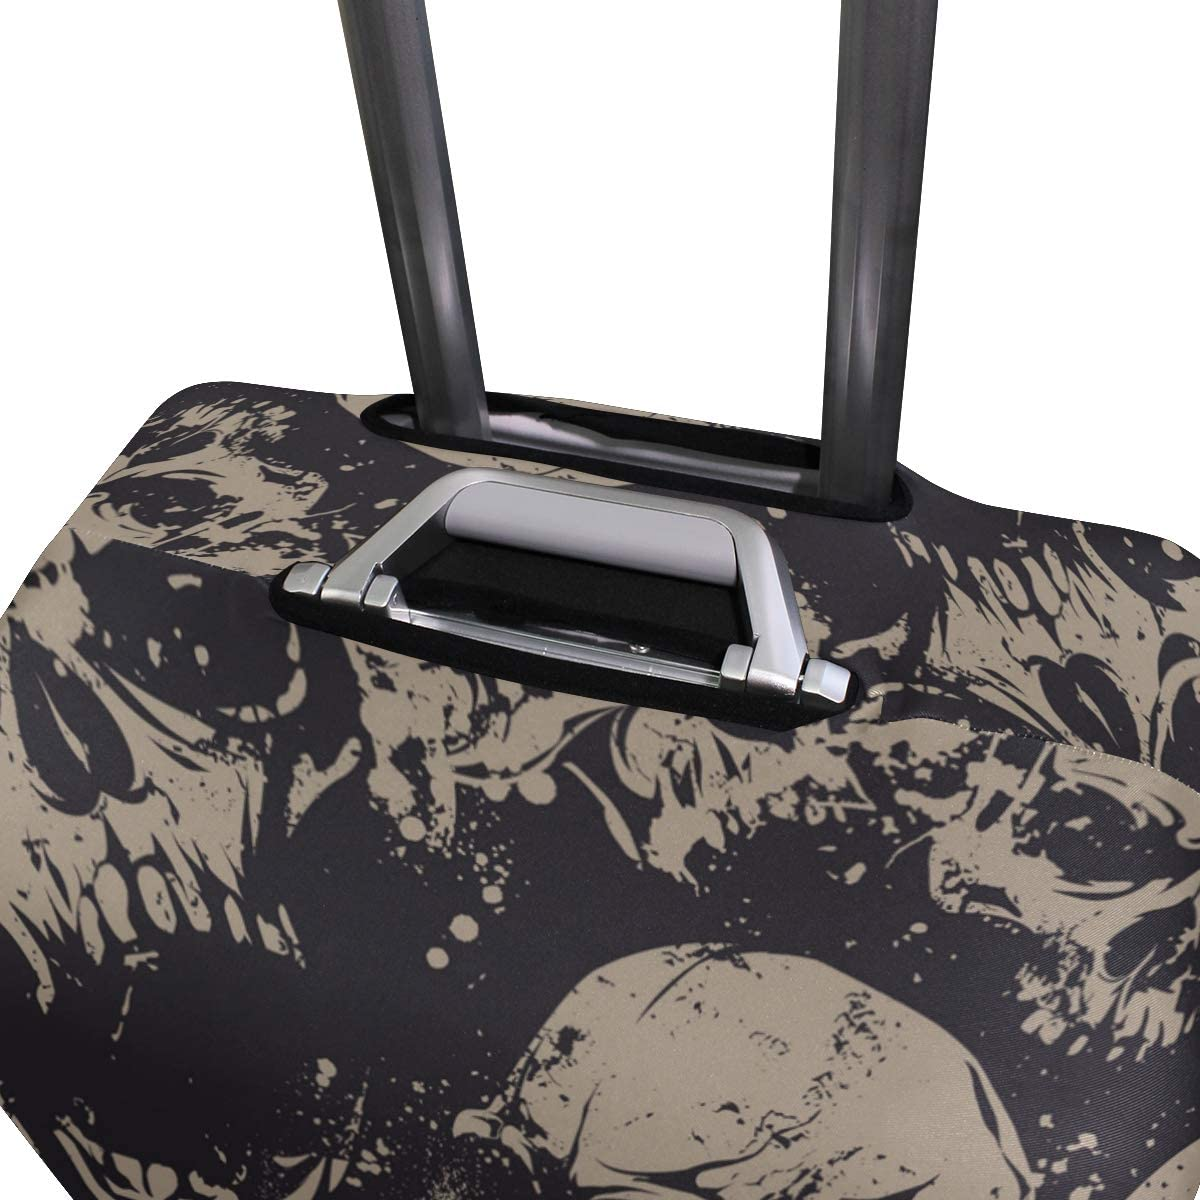 FANTAZIO Abstract Skulls Suitcase Protective Cover Luggage Cover